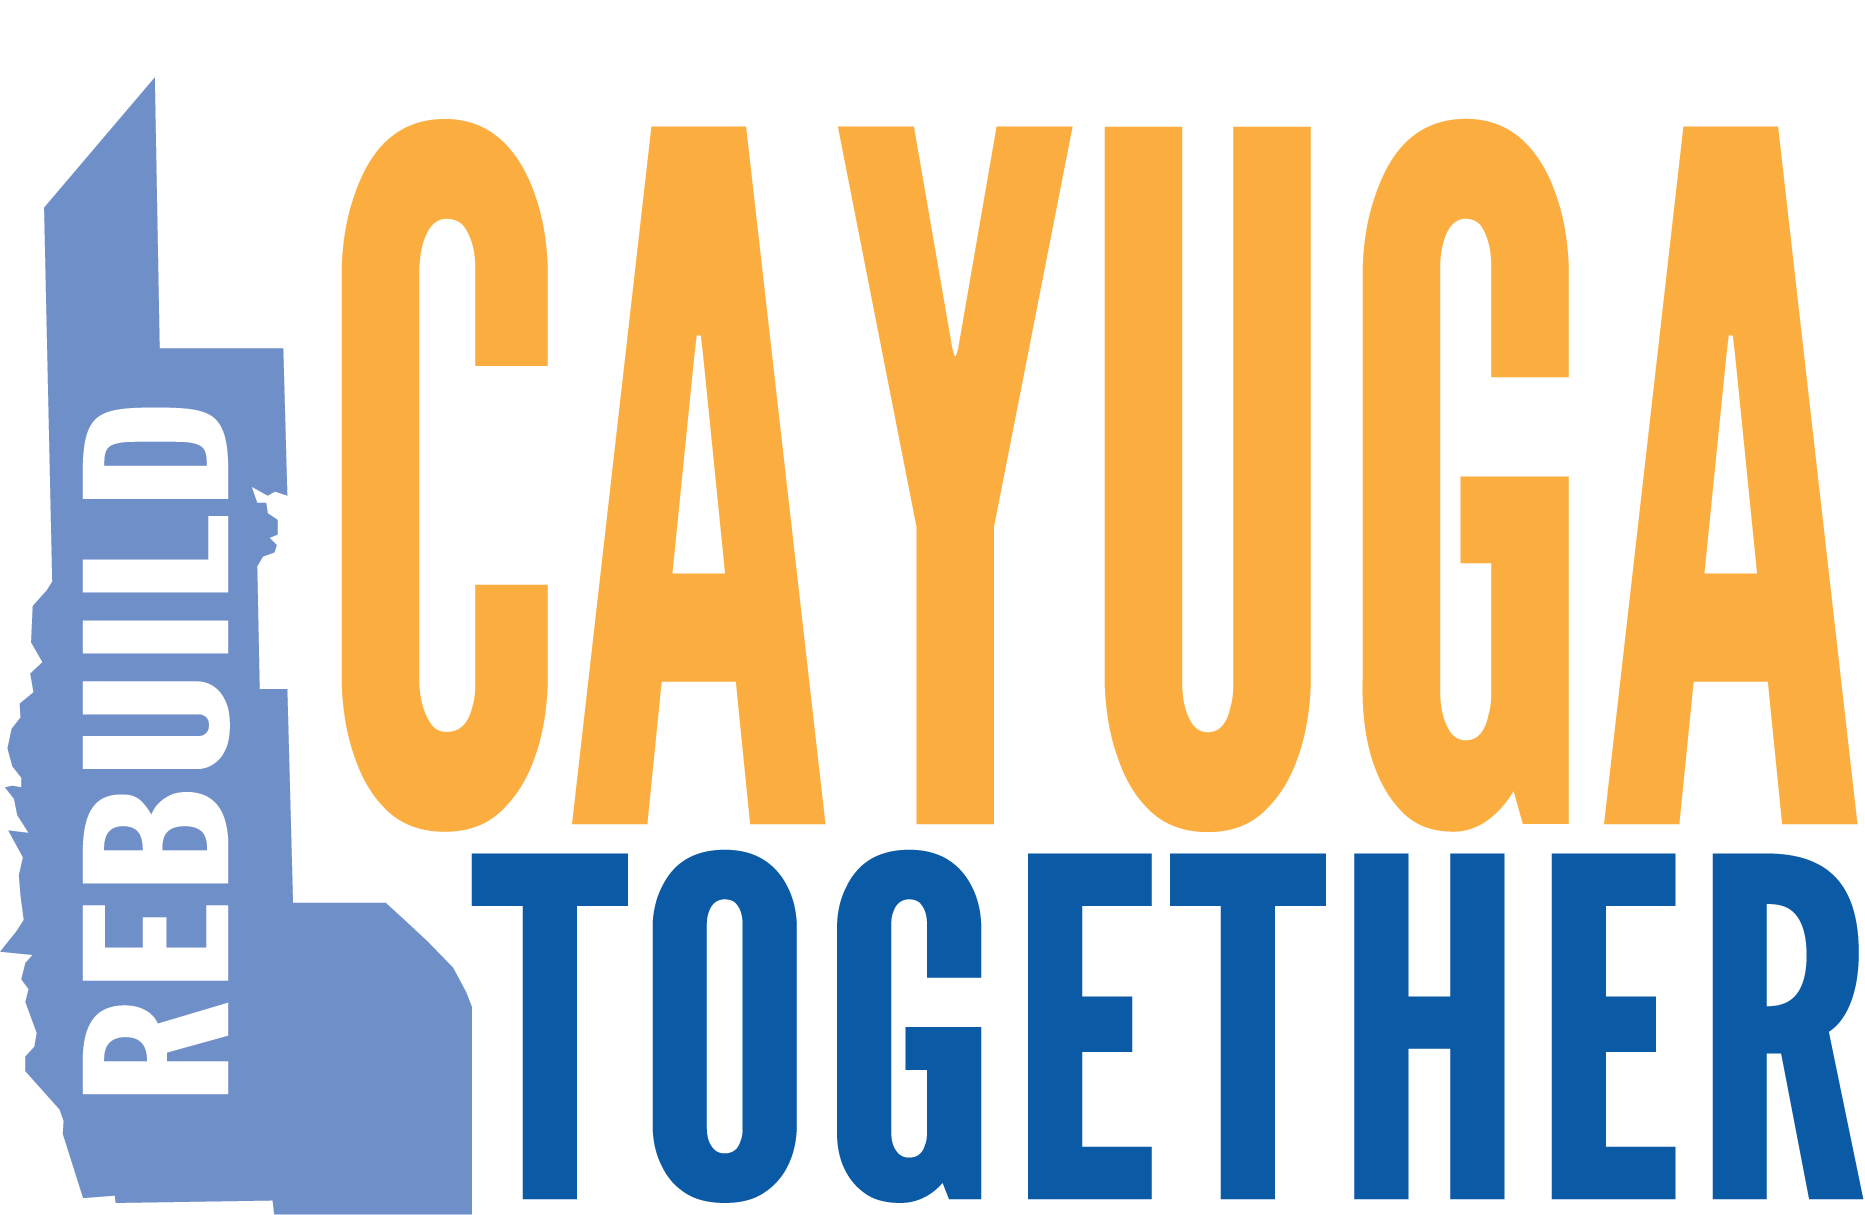 UWCC - Rebuild Cayuga Together